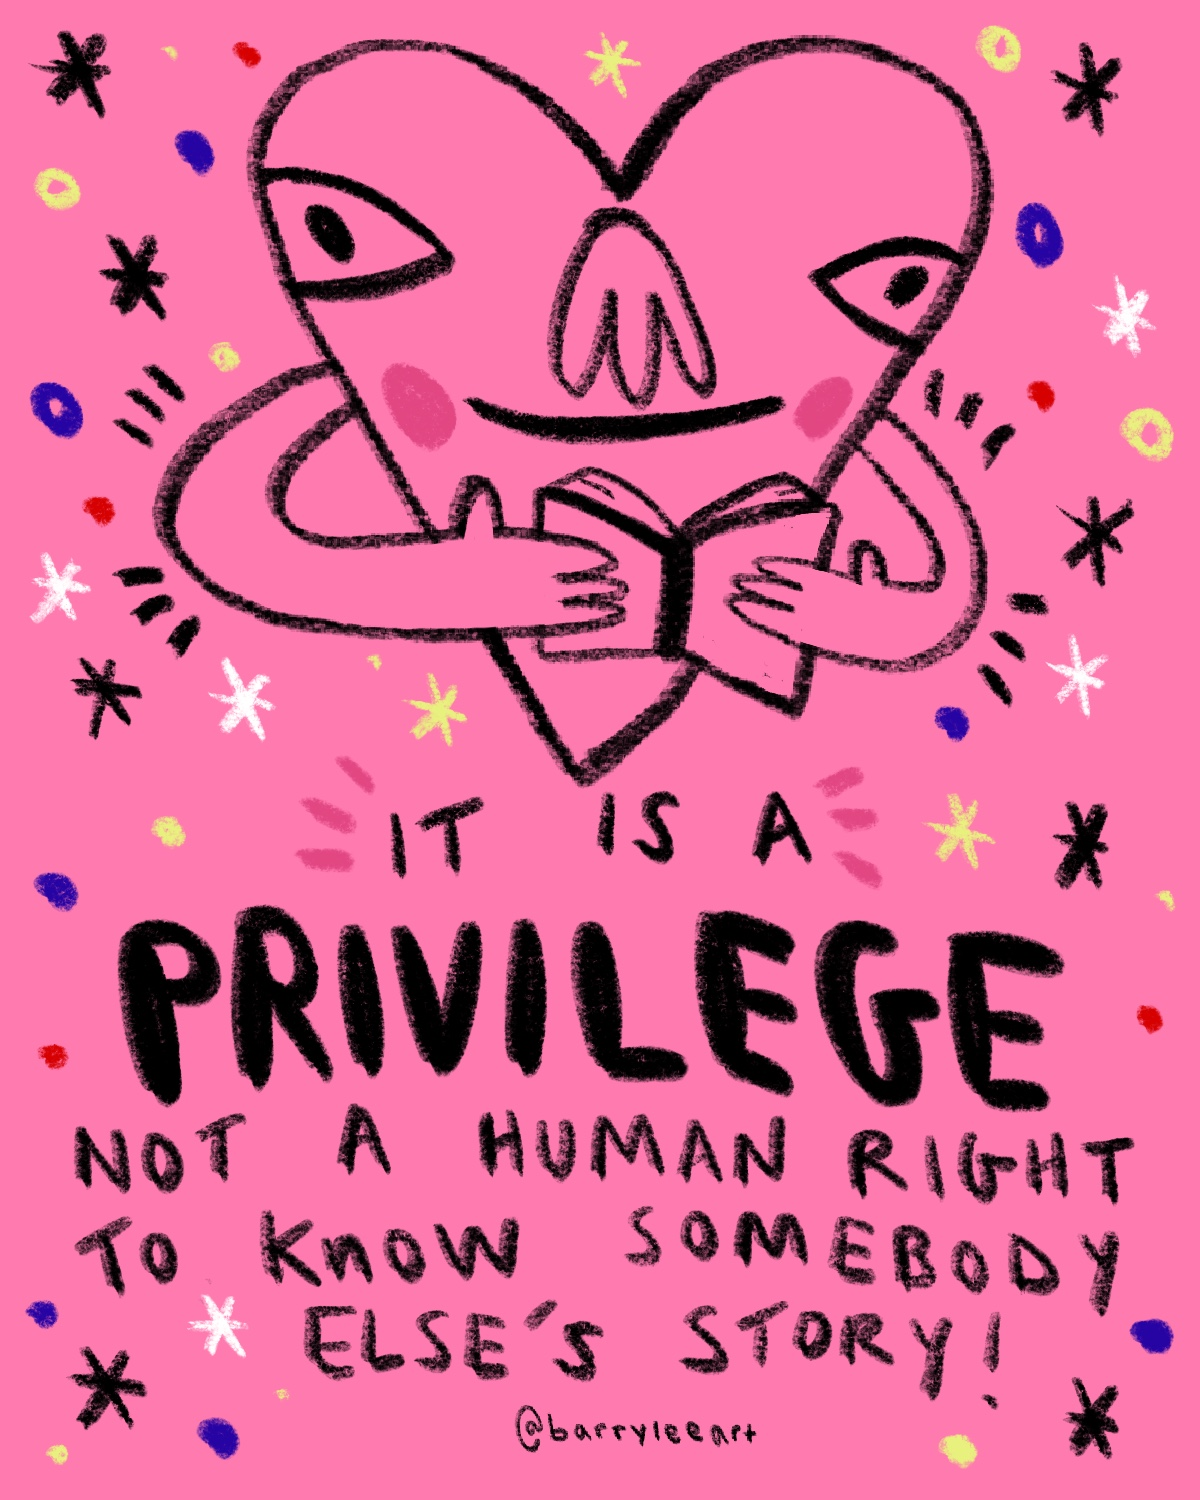 It Is A Privilege, Not a Human Right To Know Somebody Else's Story - A reminder that nobody owes you an explanation for their differences, even if you're just trying to help them. Get to know people that are different from you and they'll reveal themselves in their own time.